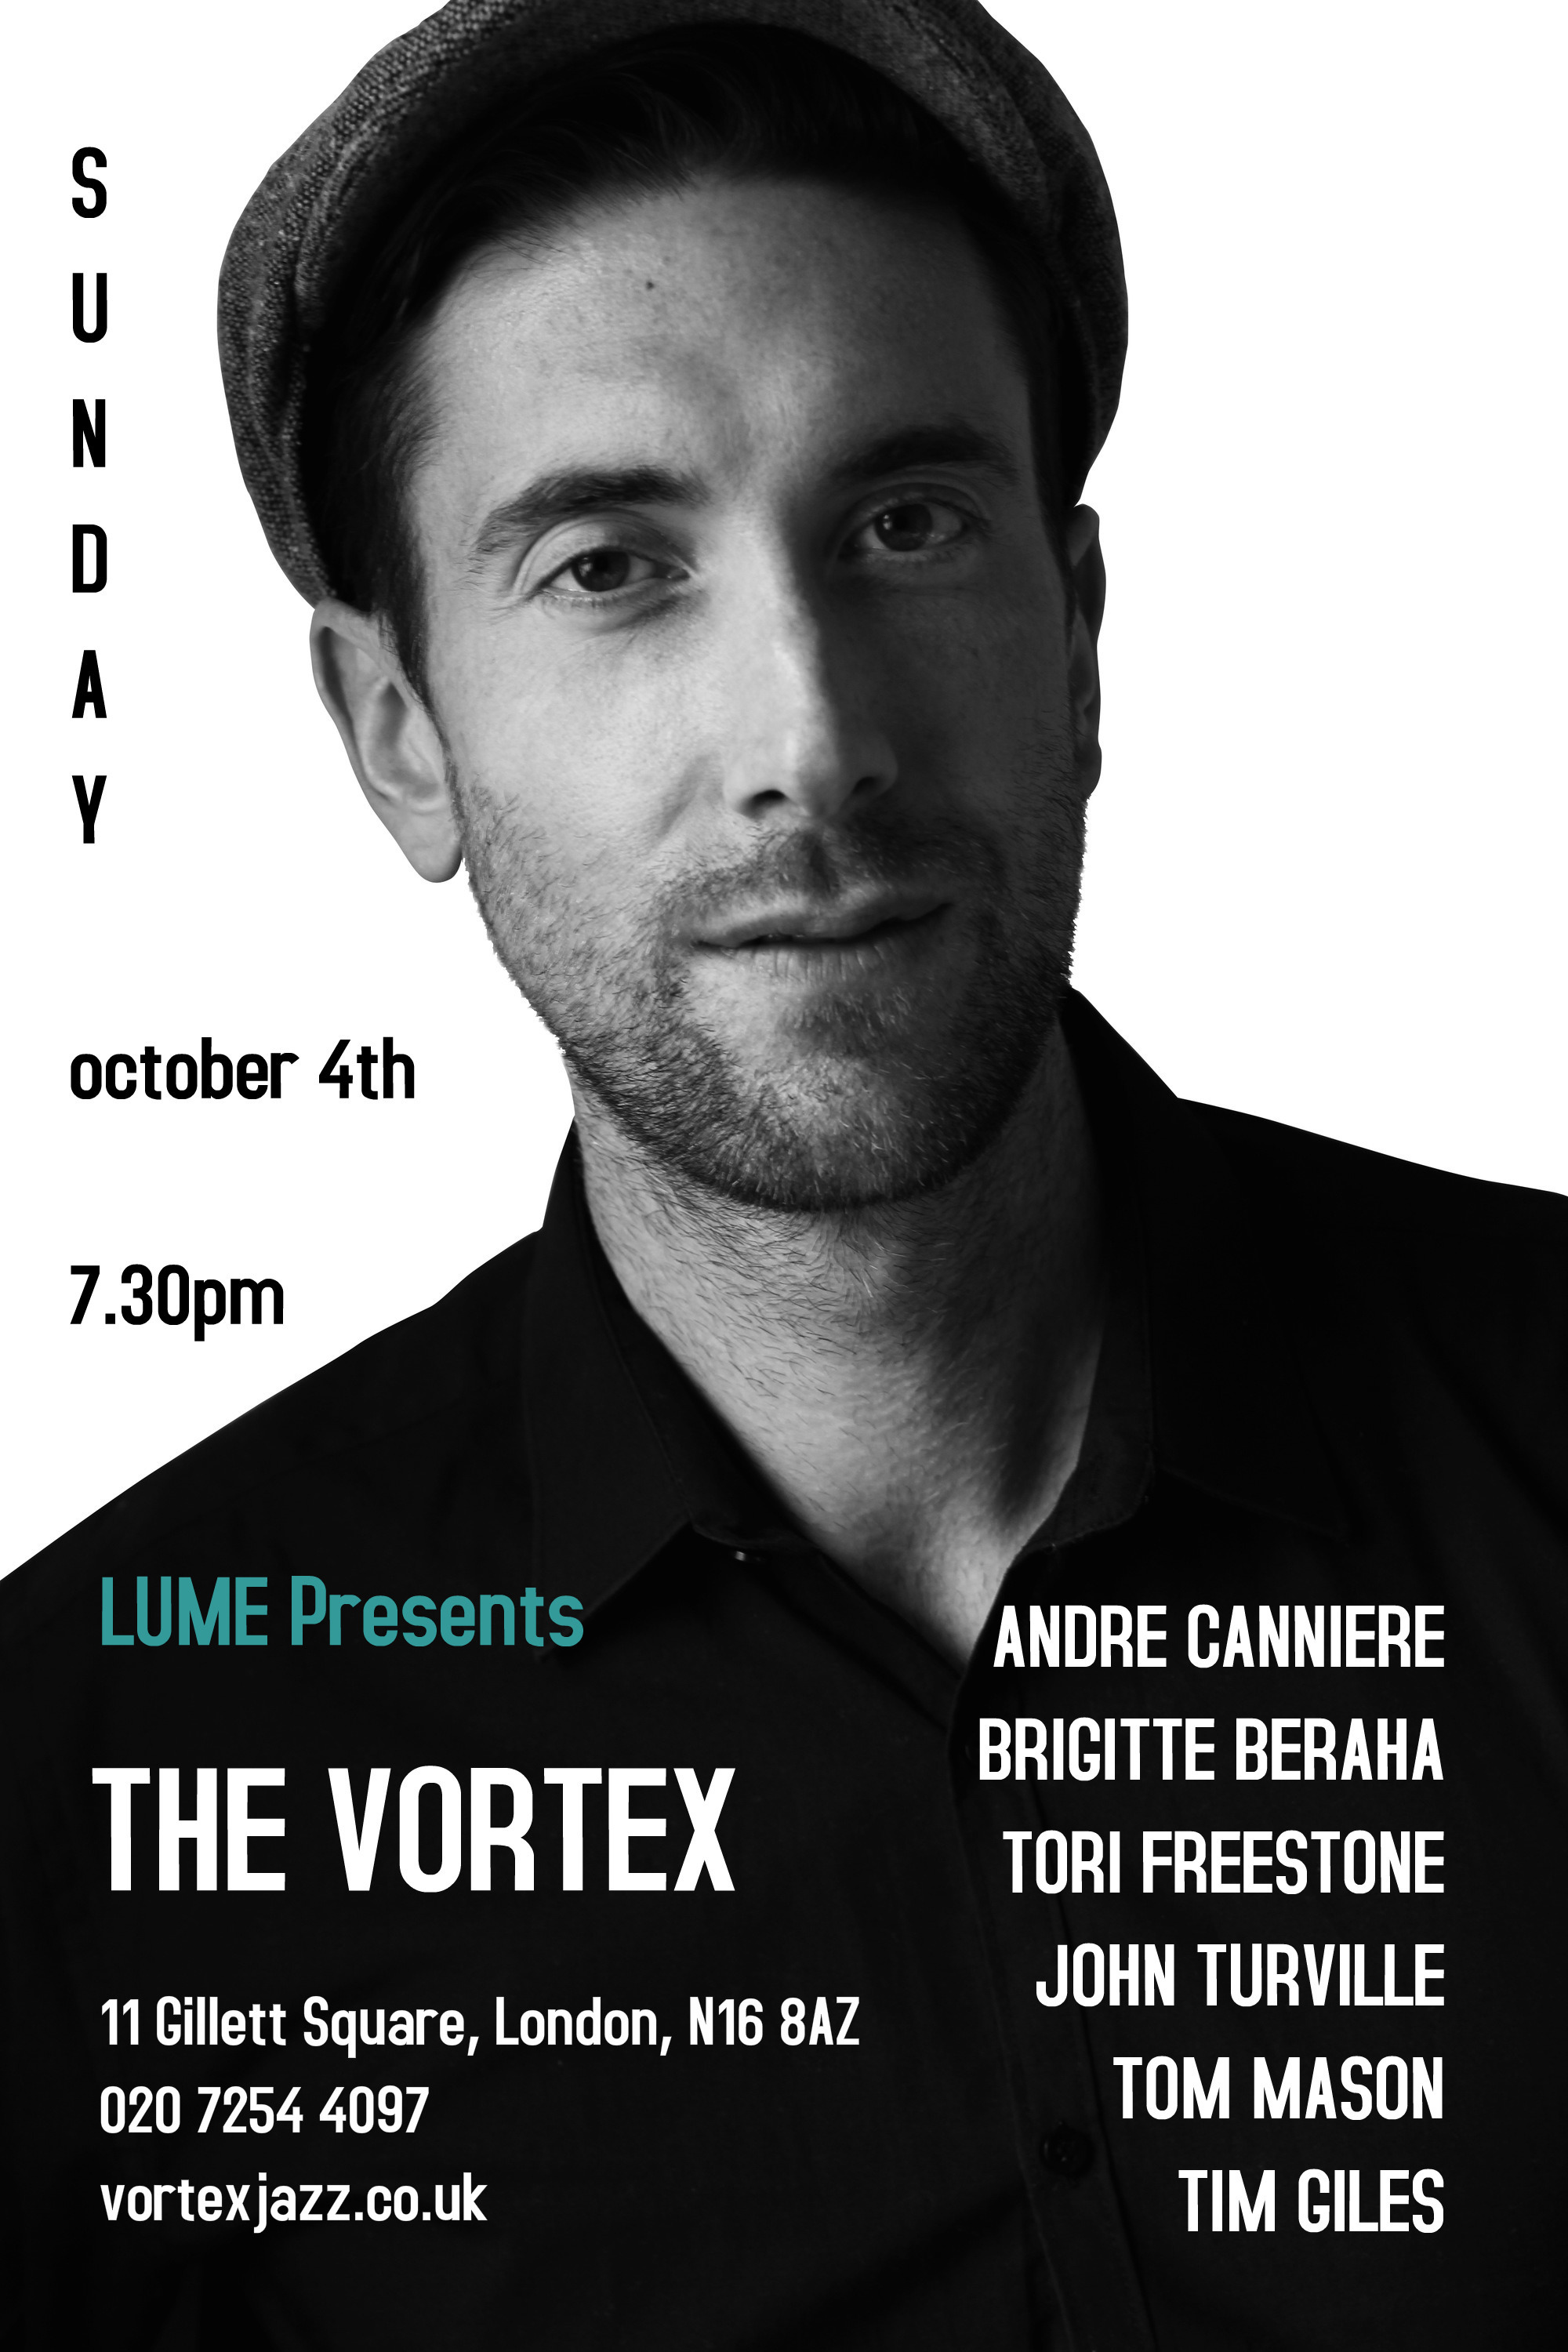 Vortex 4th October